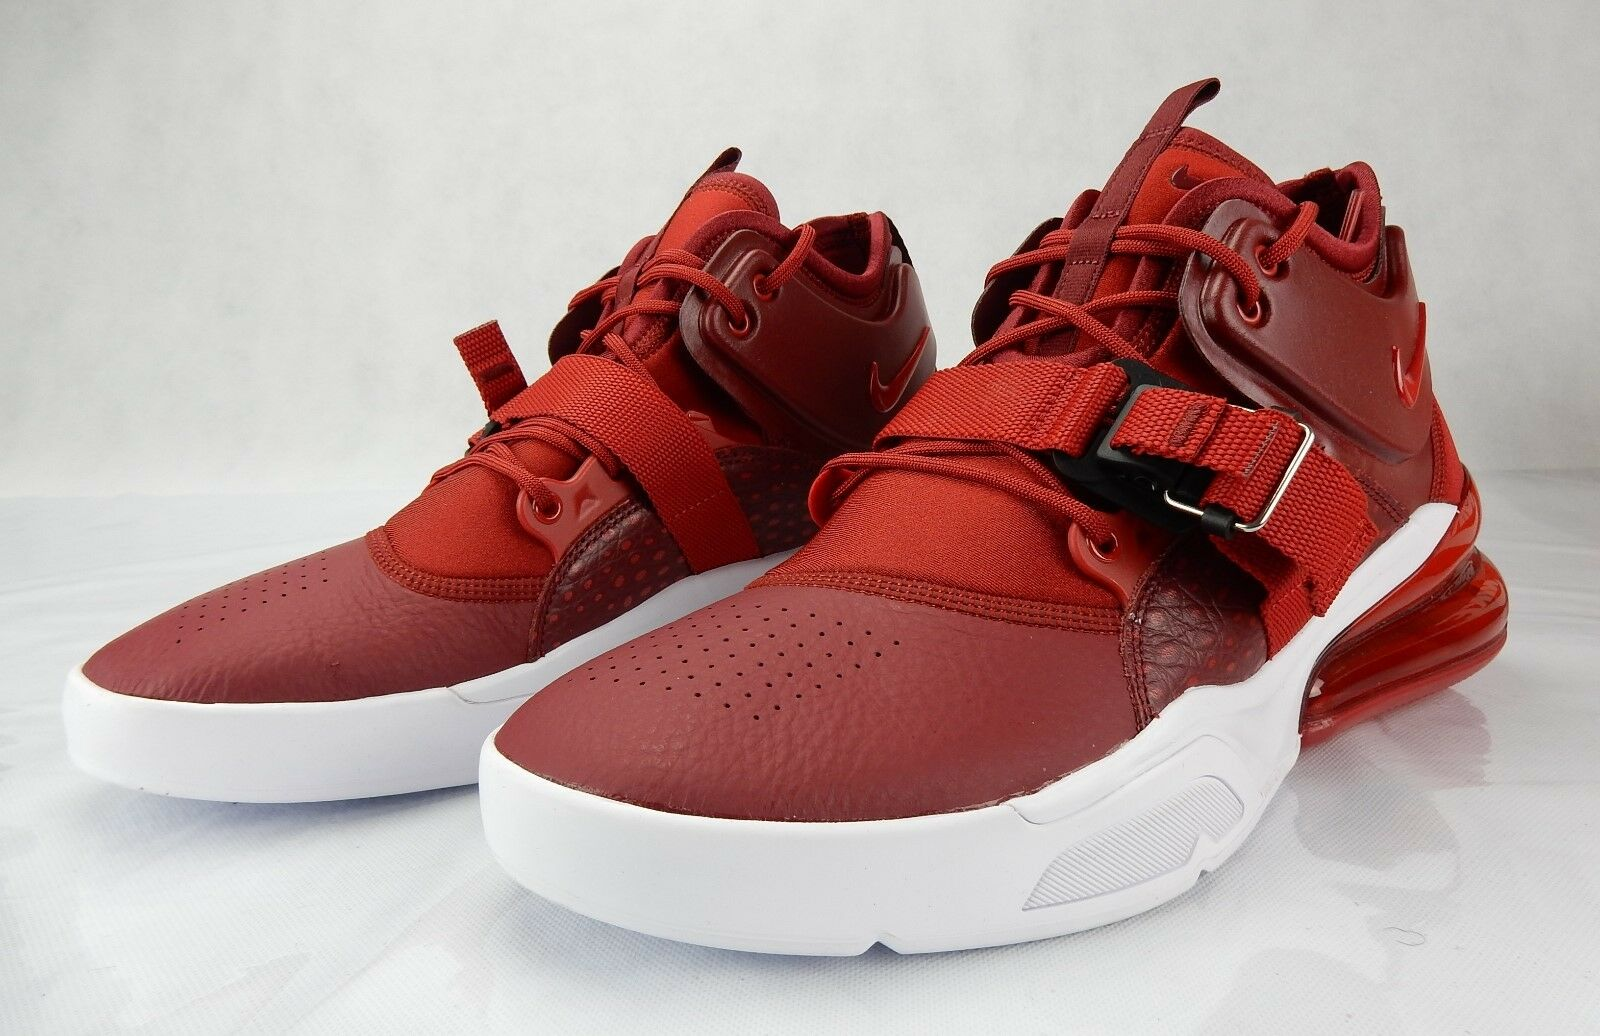 outlet store 3bd85 fc515 Nike Air Force 270 Red Croc White AH6772 600 New New New Mens Shoes S Size